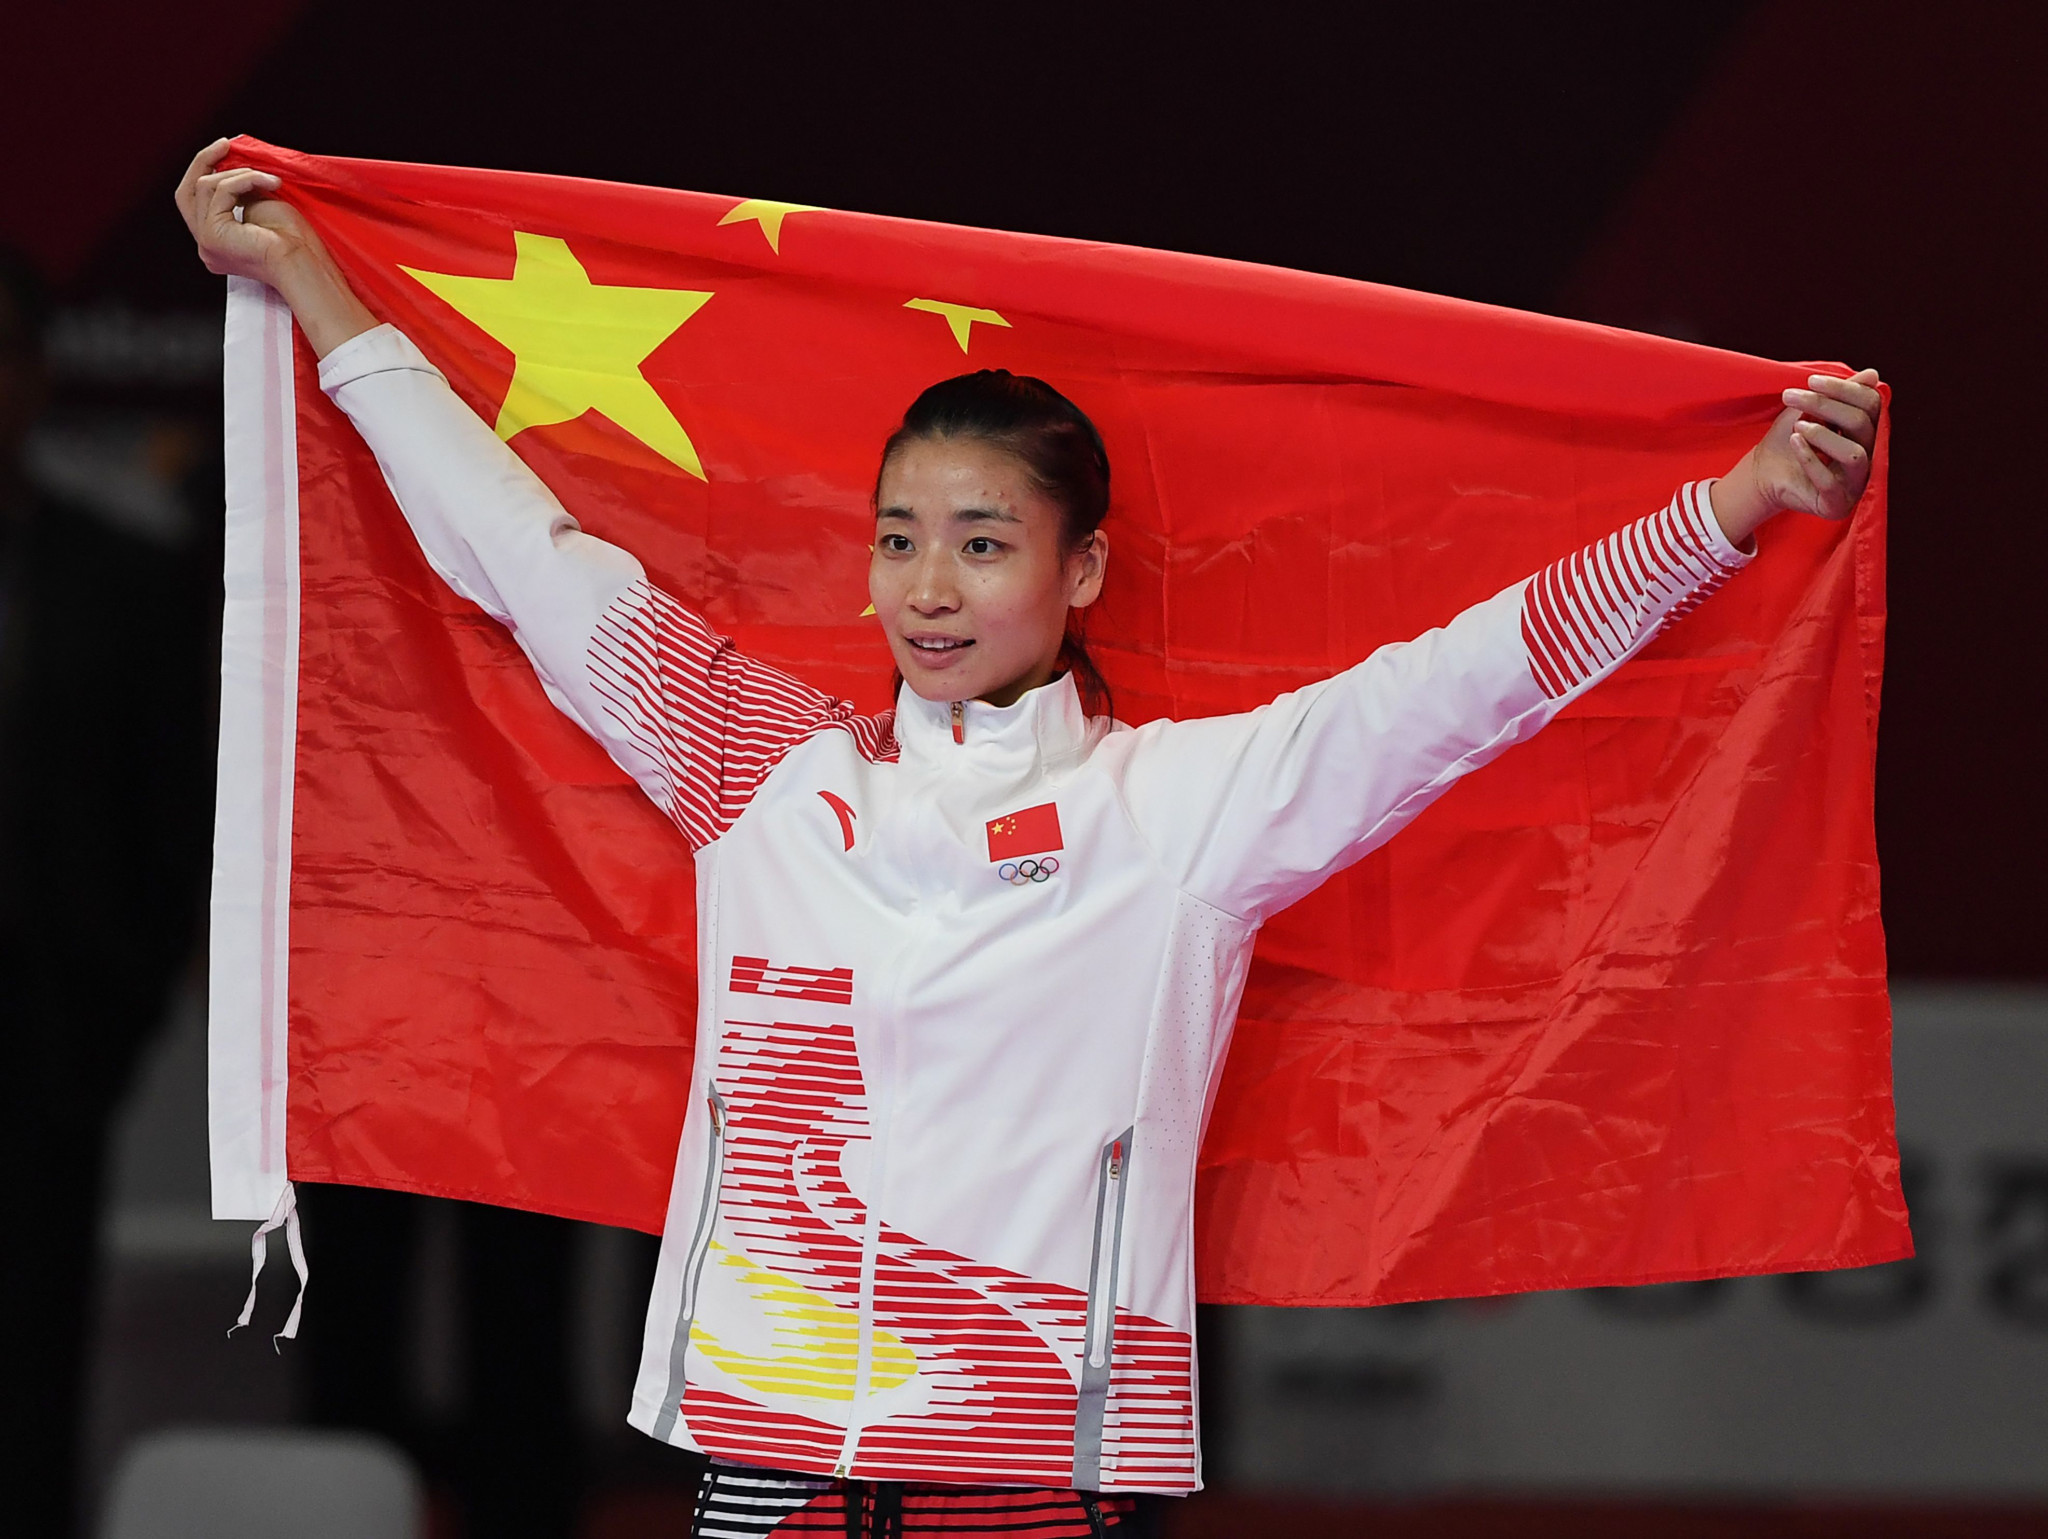 Chinese karate head estimates a 70 per cent chance of nation winning Olympic gold